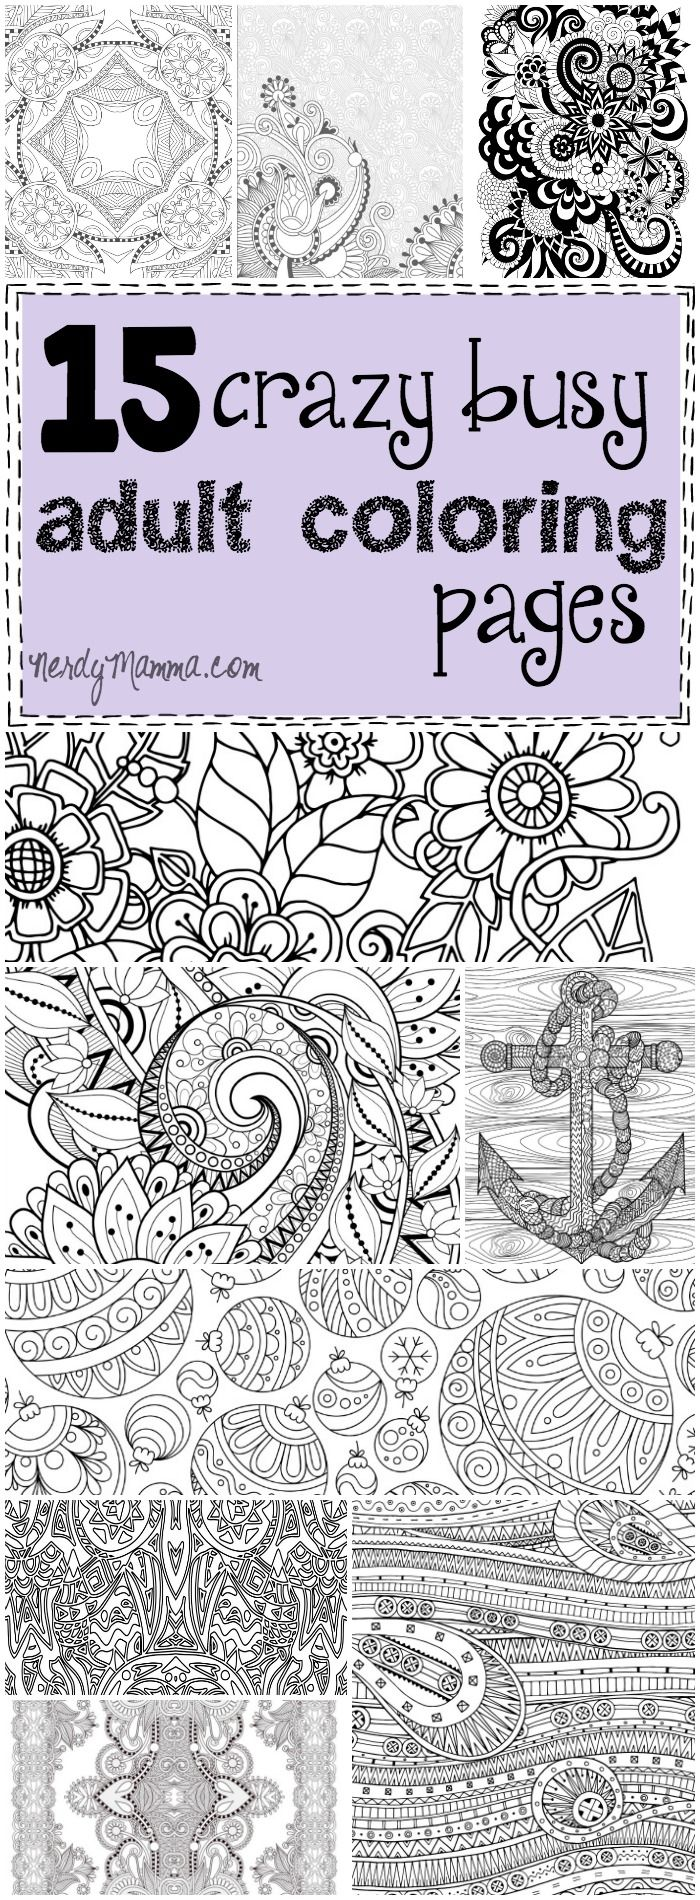 These 15 crazy busy adult coloring pages are so awesome. I love coloring!